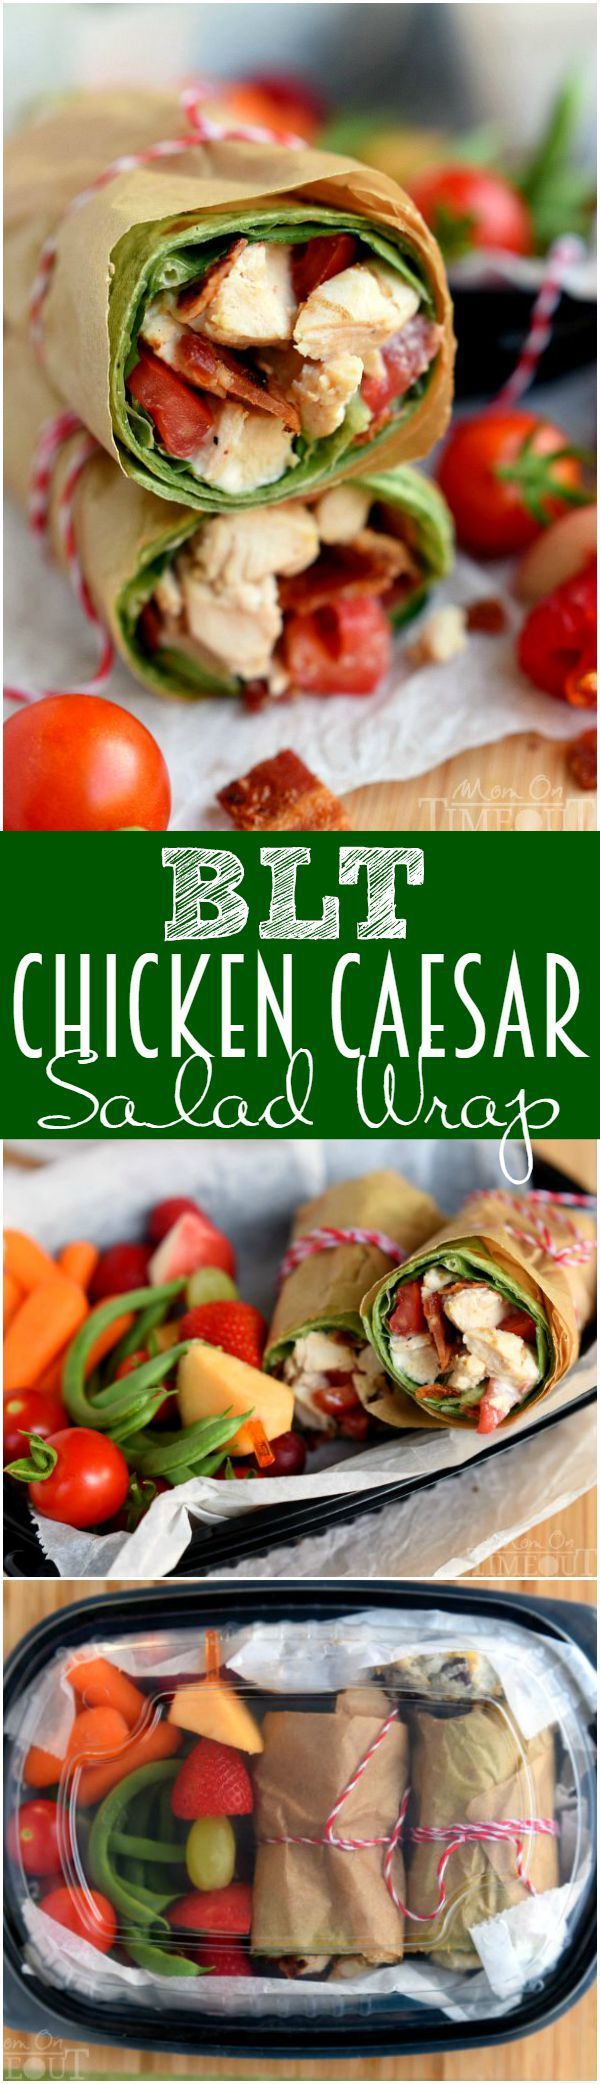 This BLT Chicken Caesar Salad Wrap has all the makings to become your new go-to recipe! Chicken, bacon, Caesar dressing, and tomato are wrapped up in an easy-to-make meal that is perfect for a light dinner or lunch.